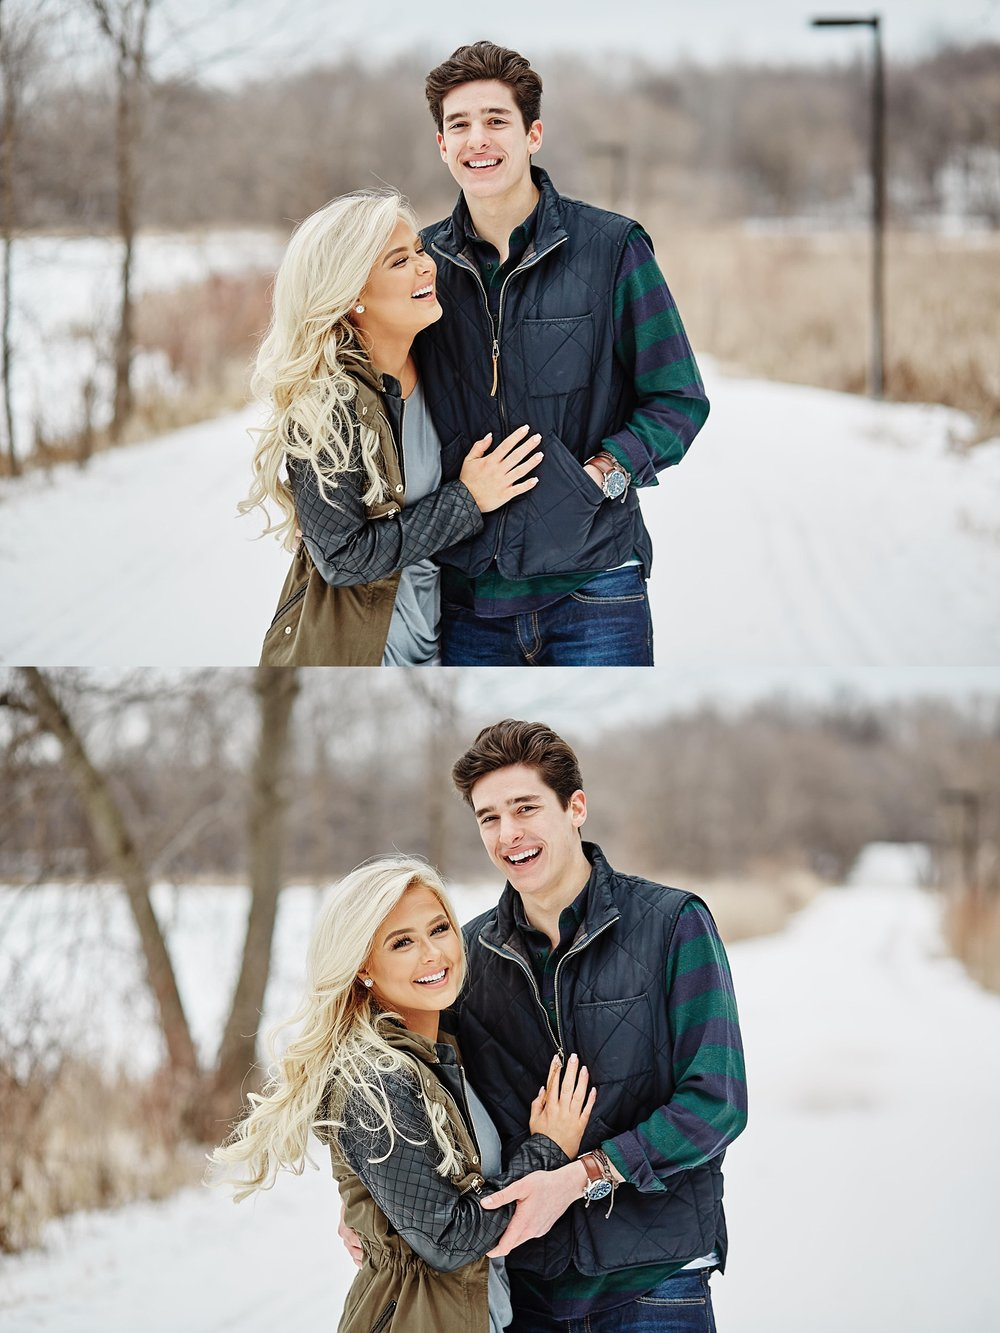 Elm-Creek-Park-Reserve-Engagement-Session-Perry-James-Photo_0170.jpg